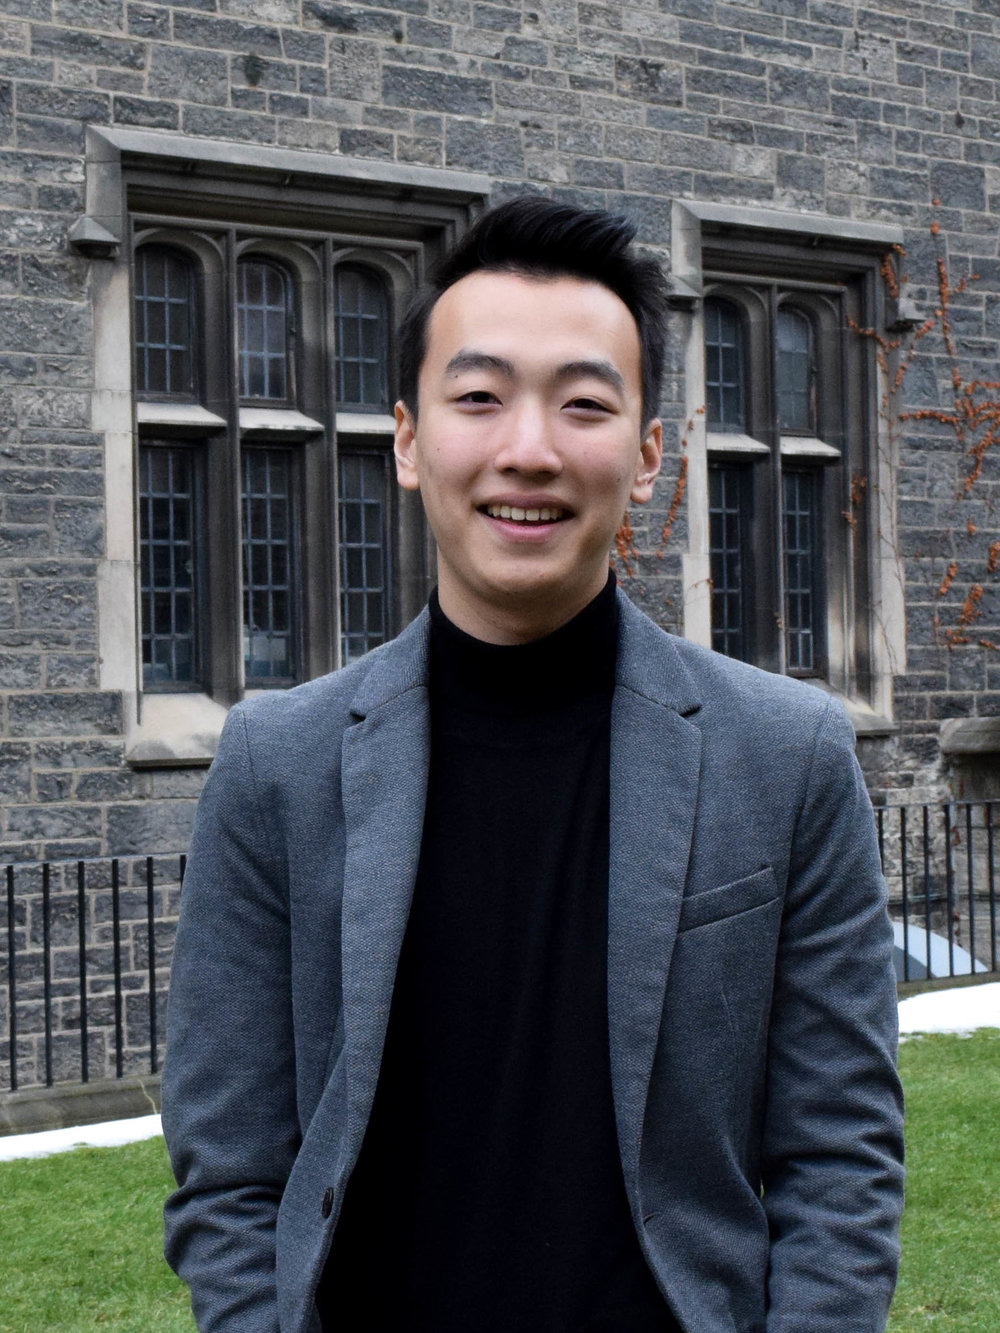 "Sean Chung is a third year student at Victoria College in the University of Toronto, specializing in Political Science, with a particular interest in North Korea, especially as it pertains to the plight of refugees, human rights, and information technology and exchange. He is a research assistant at the York Centre for Asian Research (YCAR), examining cultural identity displacement in North Korean refugees during the resettlement process. He serves as the Associate Director for Research at HanVoice, Canada's leading non-profit on North Korean human rights and refugees, in addition to serving as the President of HanVoice UToronto, the organization's flagship chapter at the University of Toronto."" [Only if the tone is light - ""In his (infrequent) free time, Sean enjoys avocado brunch, coffee from overpriced independent coffeeshops, and U.S. politics -- in that order."